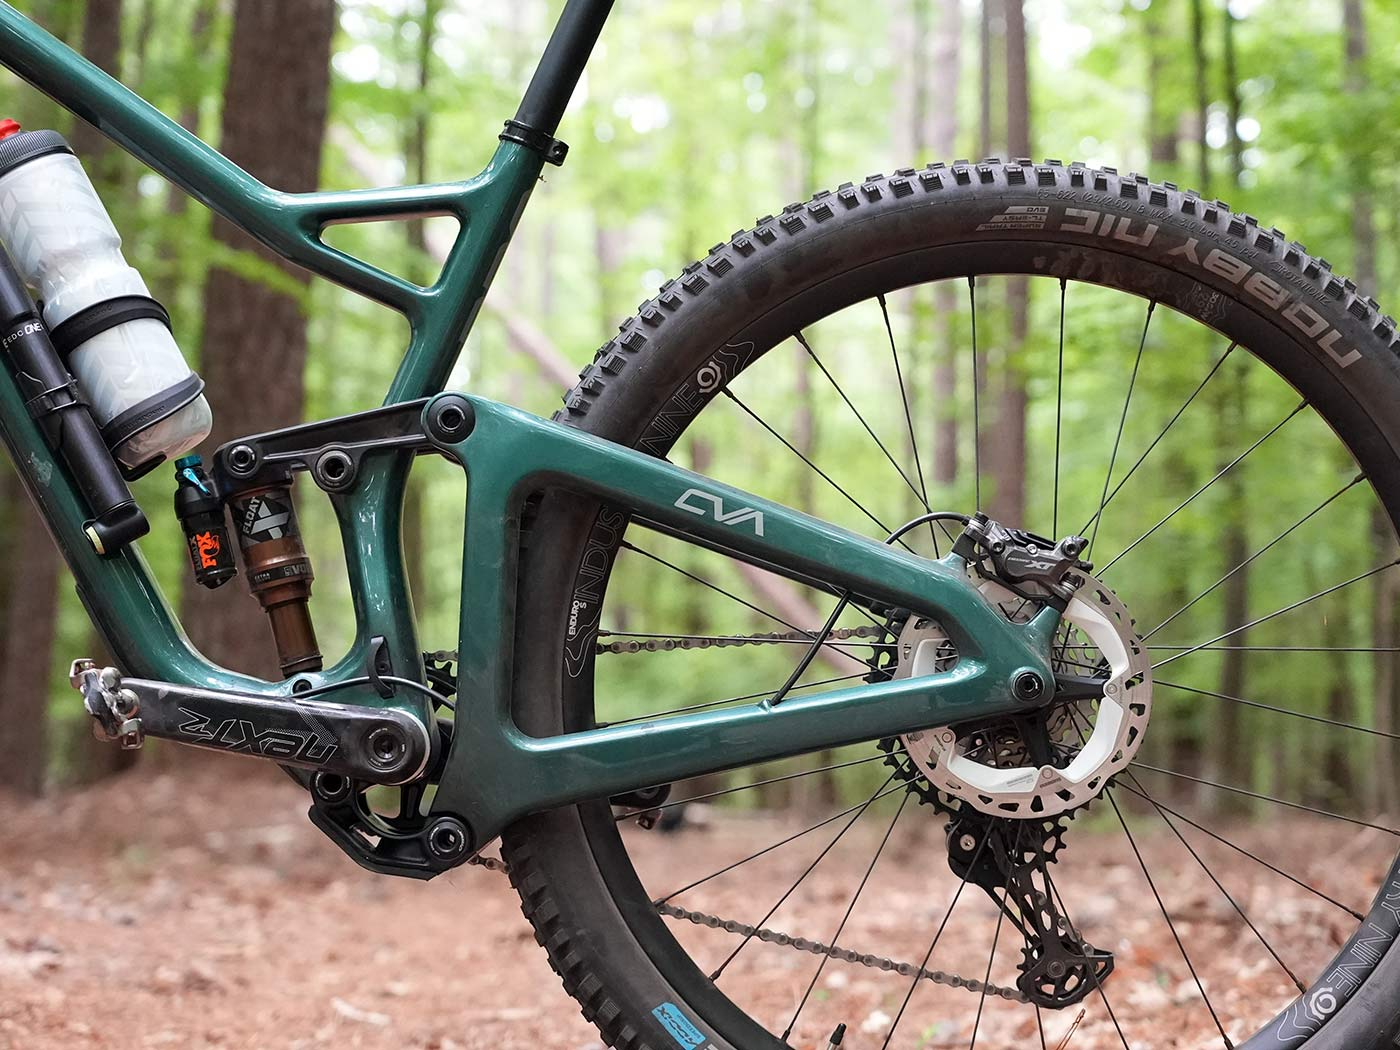 tech details and closeup rear suspension photos of the 2022 niner jet 9 rdo trail mountain bike